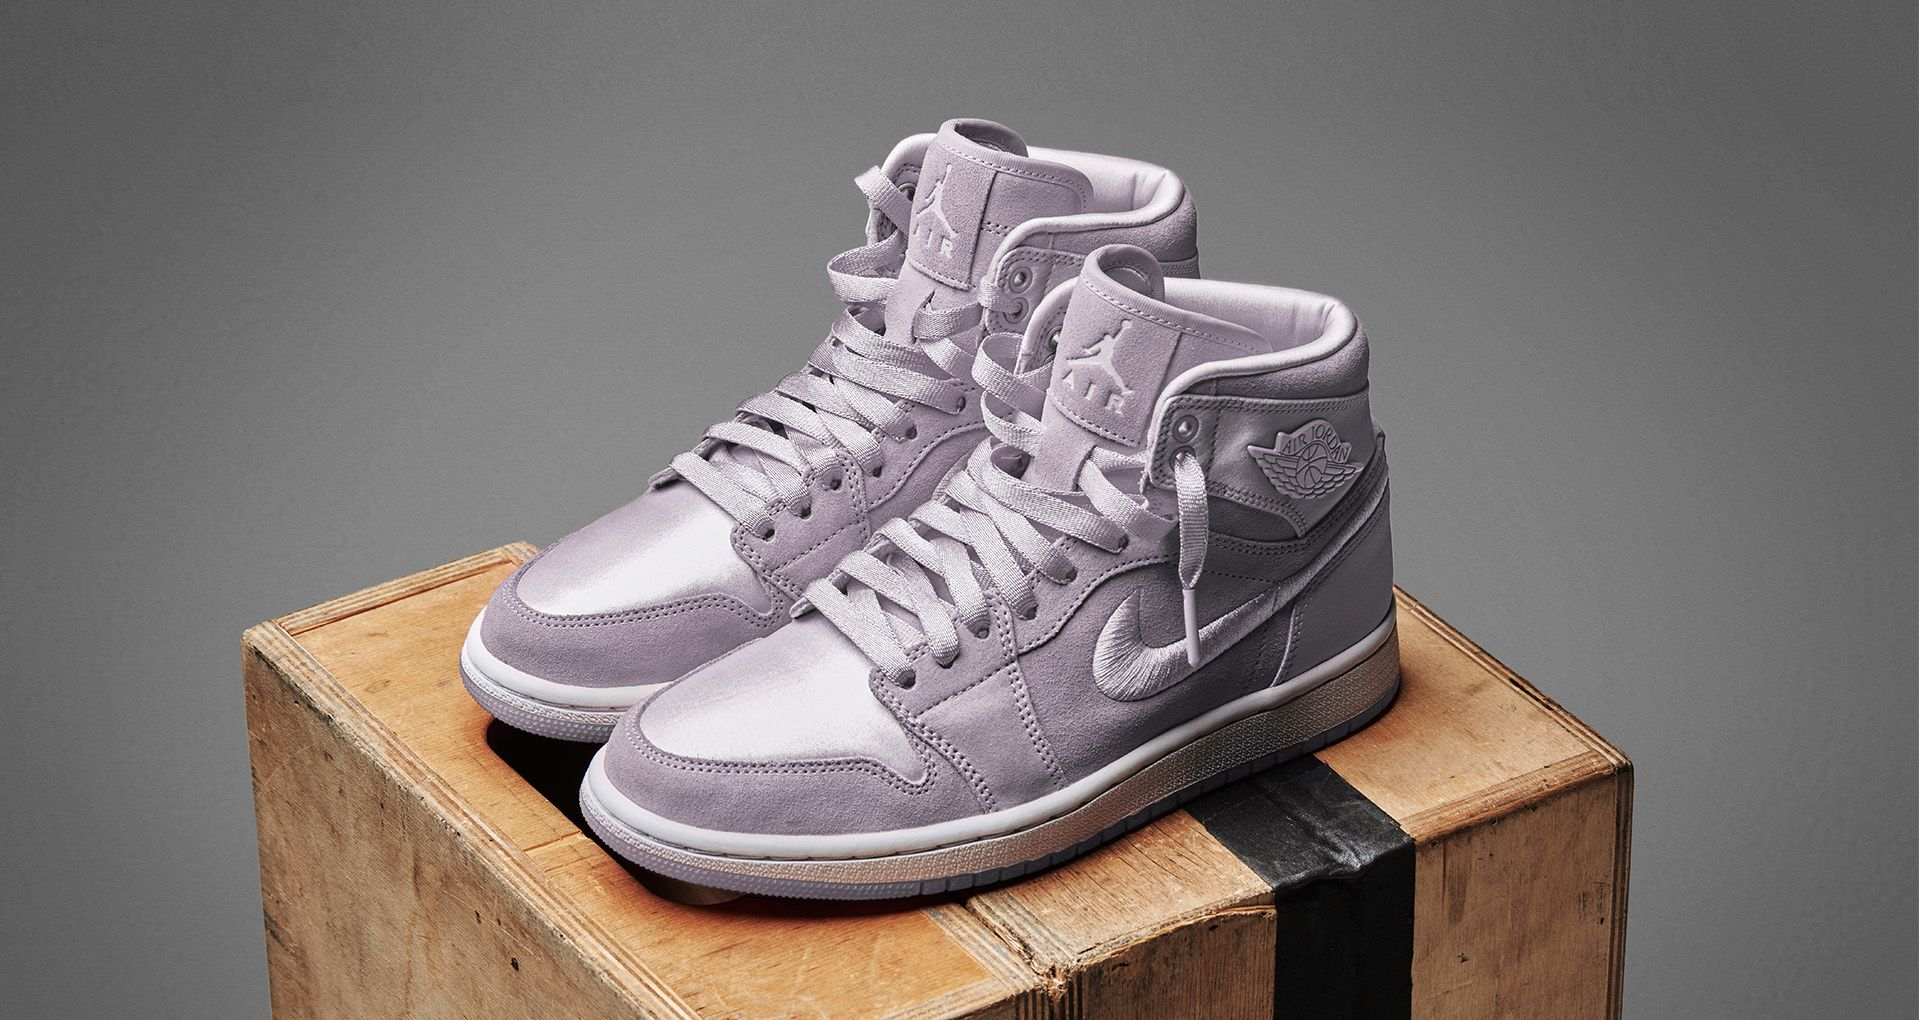 5a412c4a80 Women's Air Jordan 1 Retro High 'Barely Grape' Release Date. Nike⁠+ ...